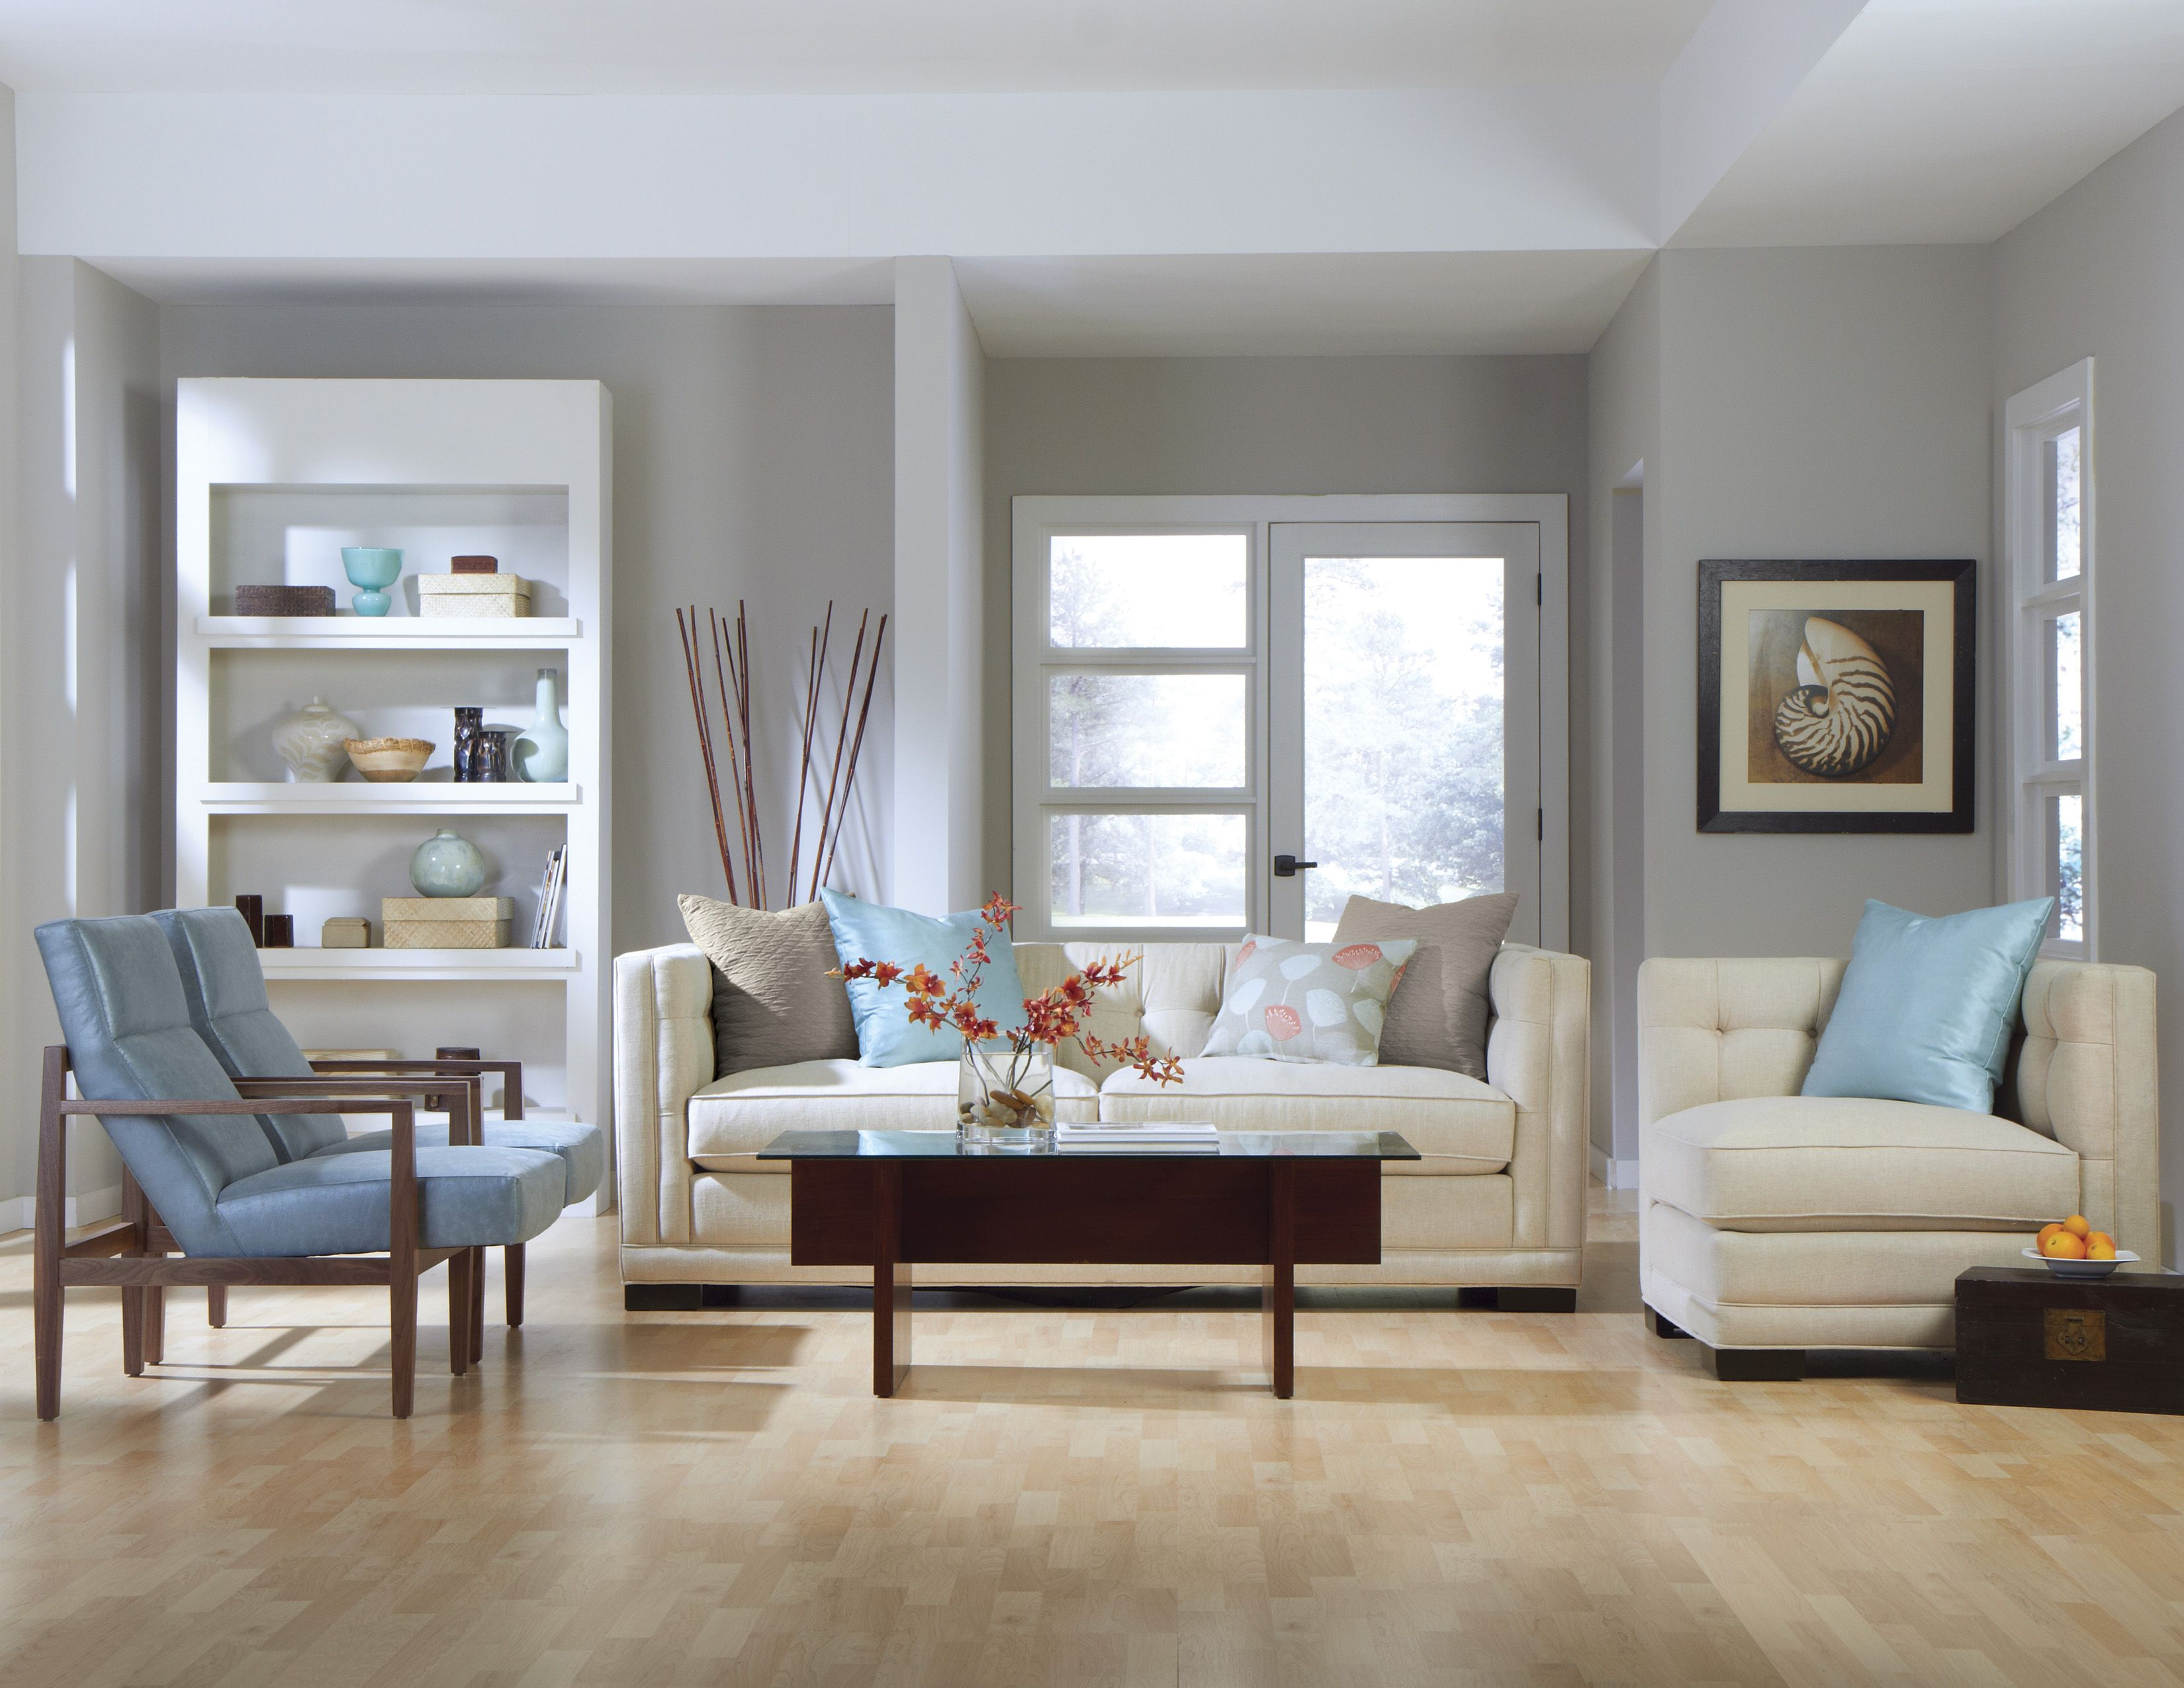 Our Abby Sofa Set With A Serene Pastel Blue And A Lovely Cream Is